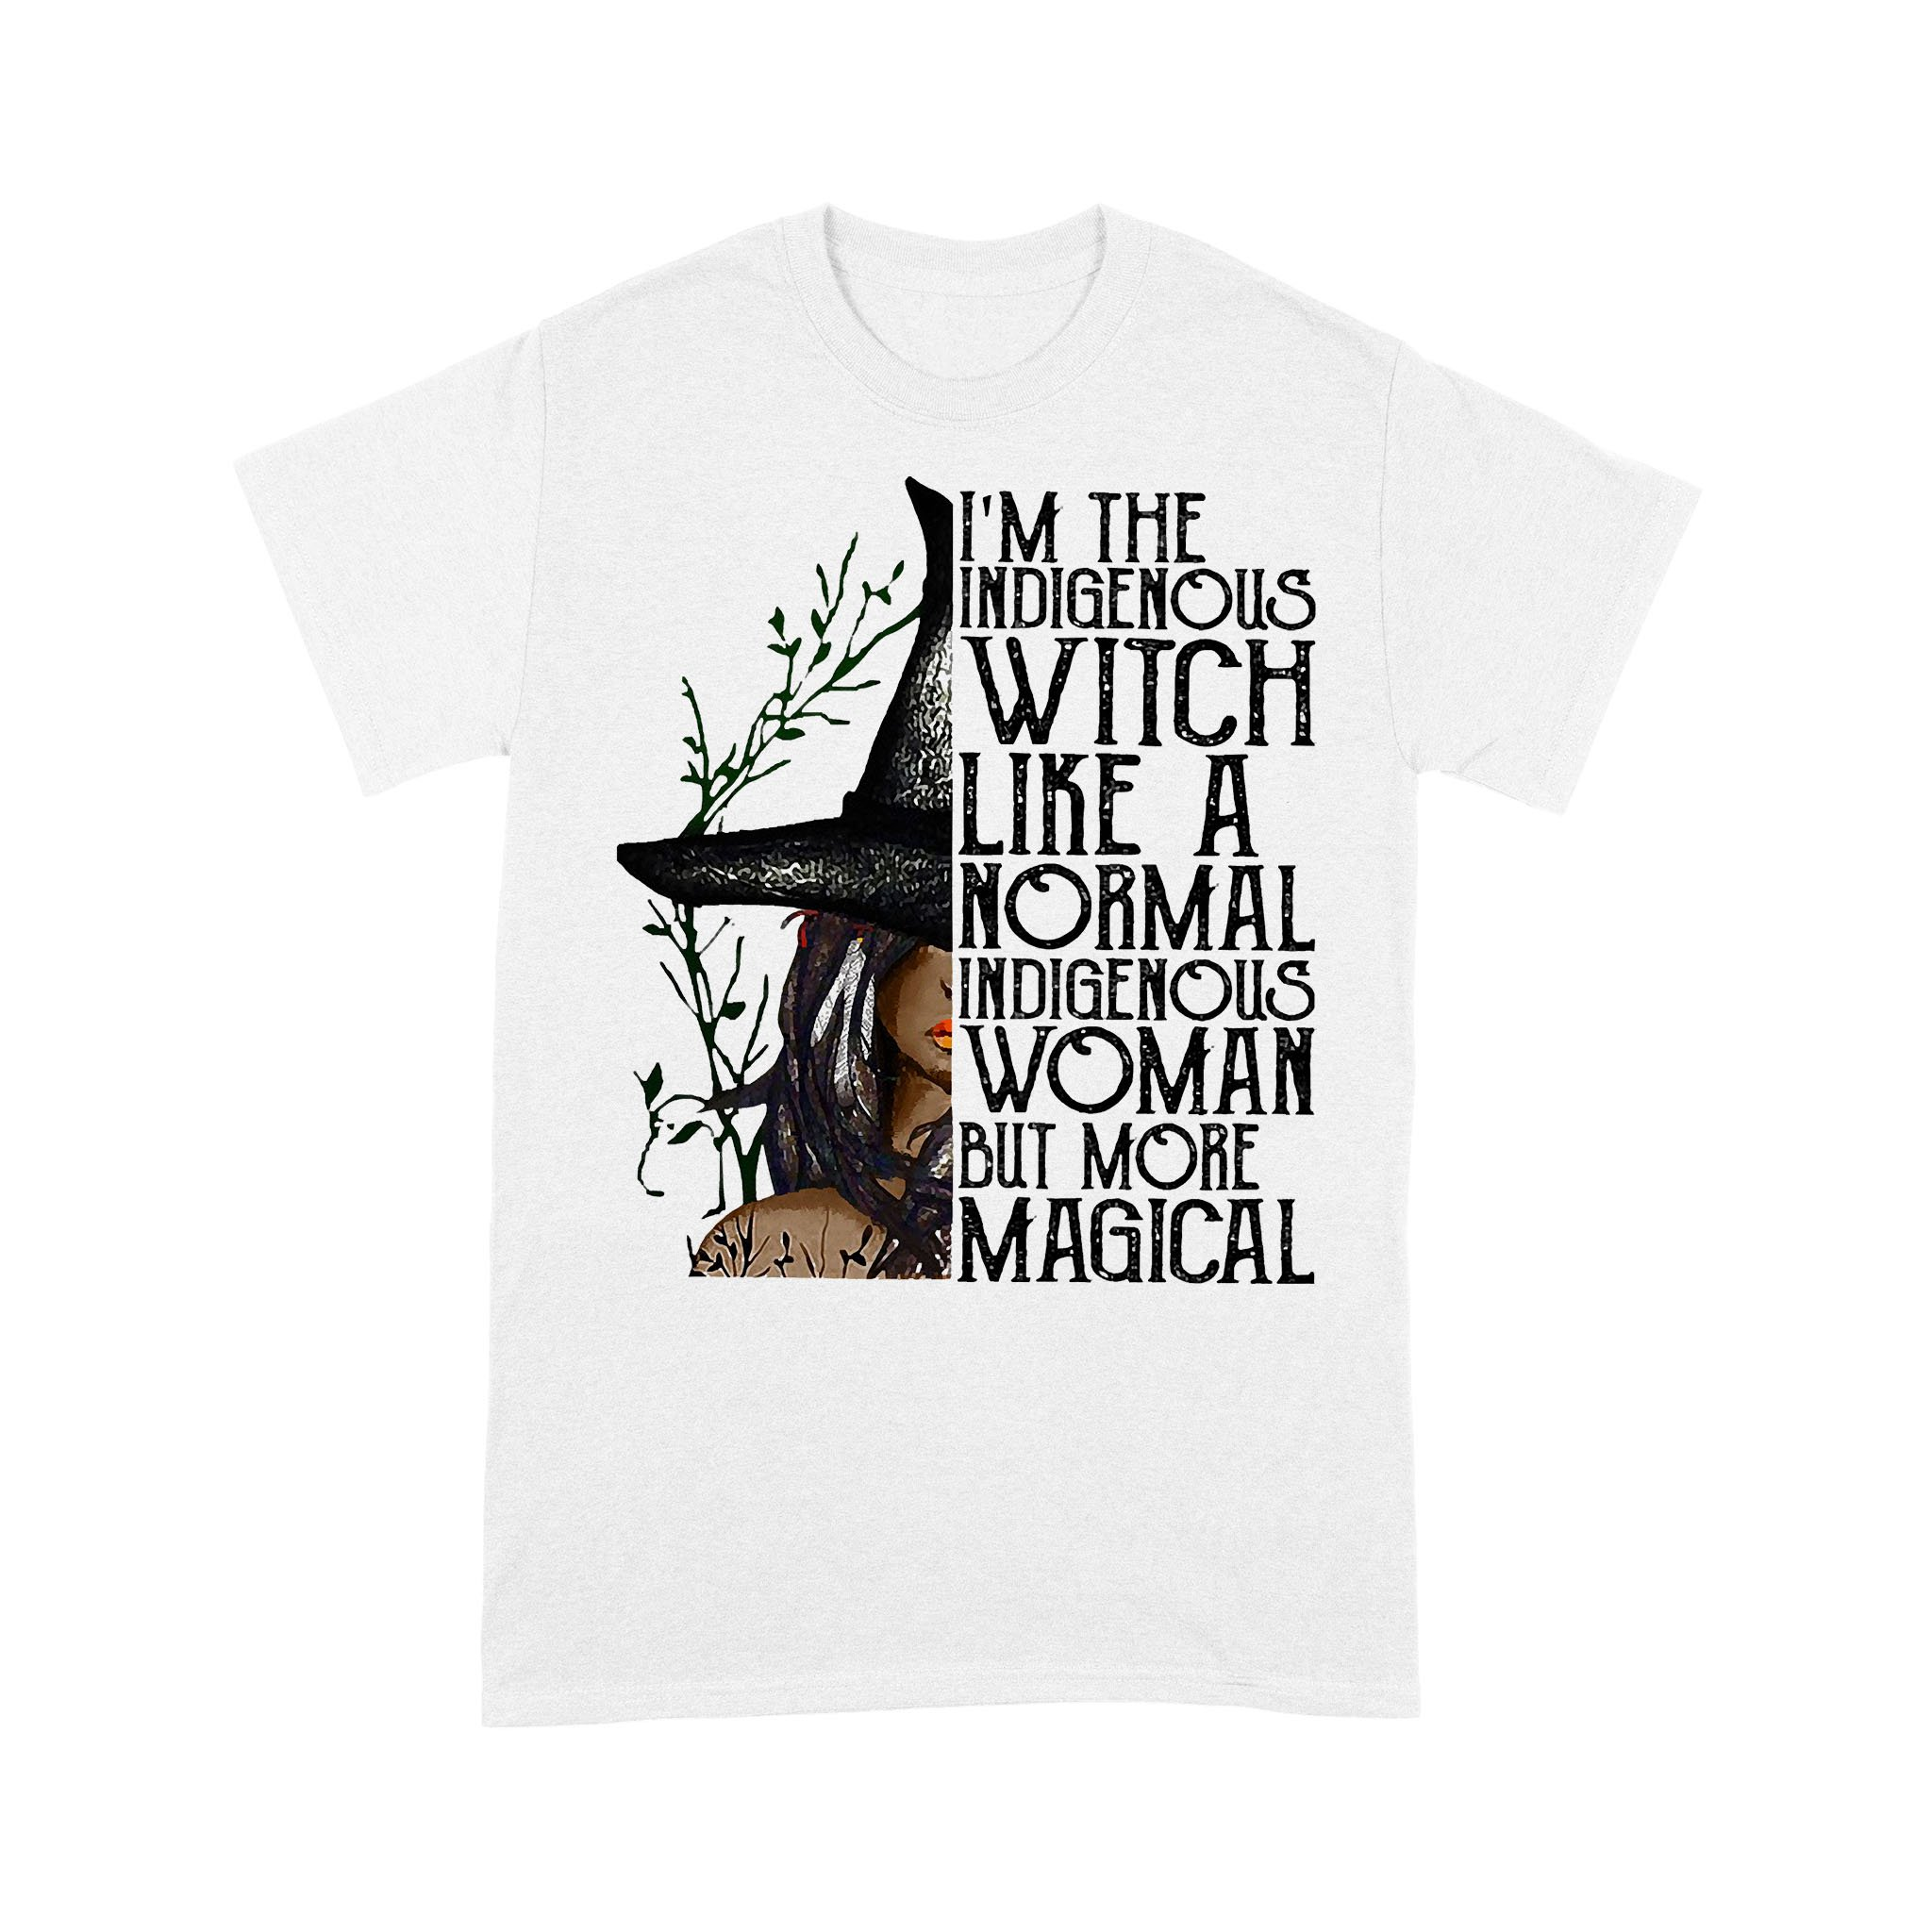 I'm The Indigenous Witch Like A Normal Indigenous Woman But More Magical T-shirt